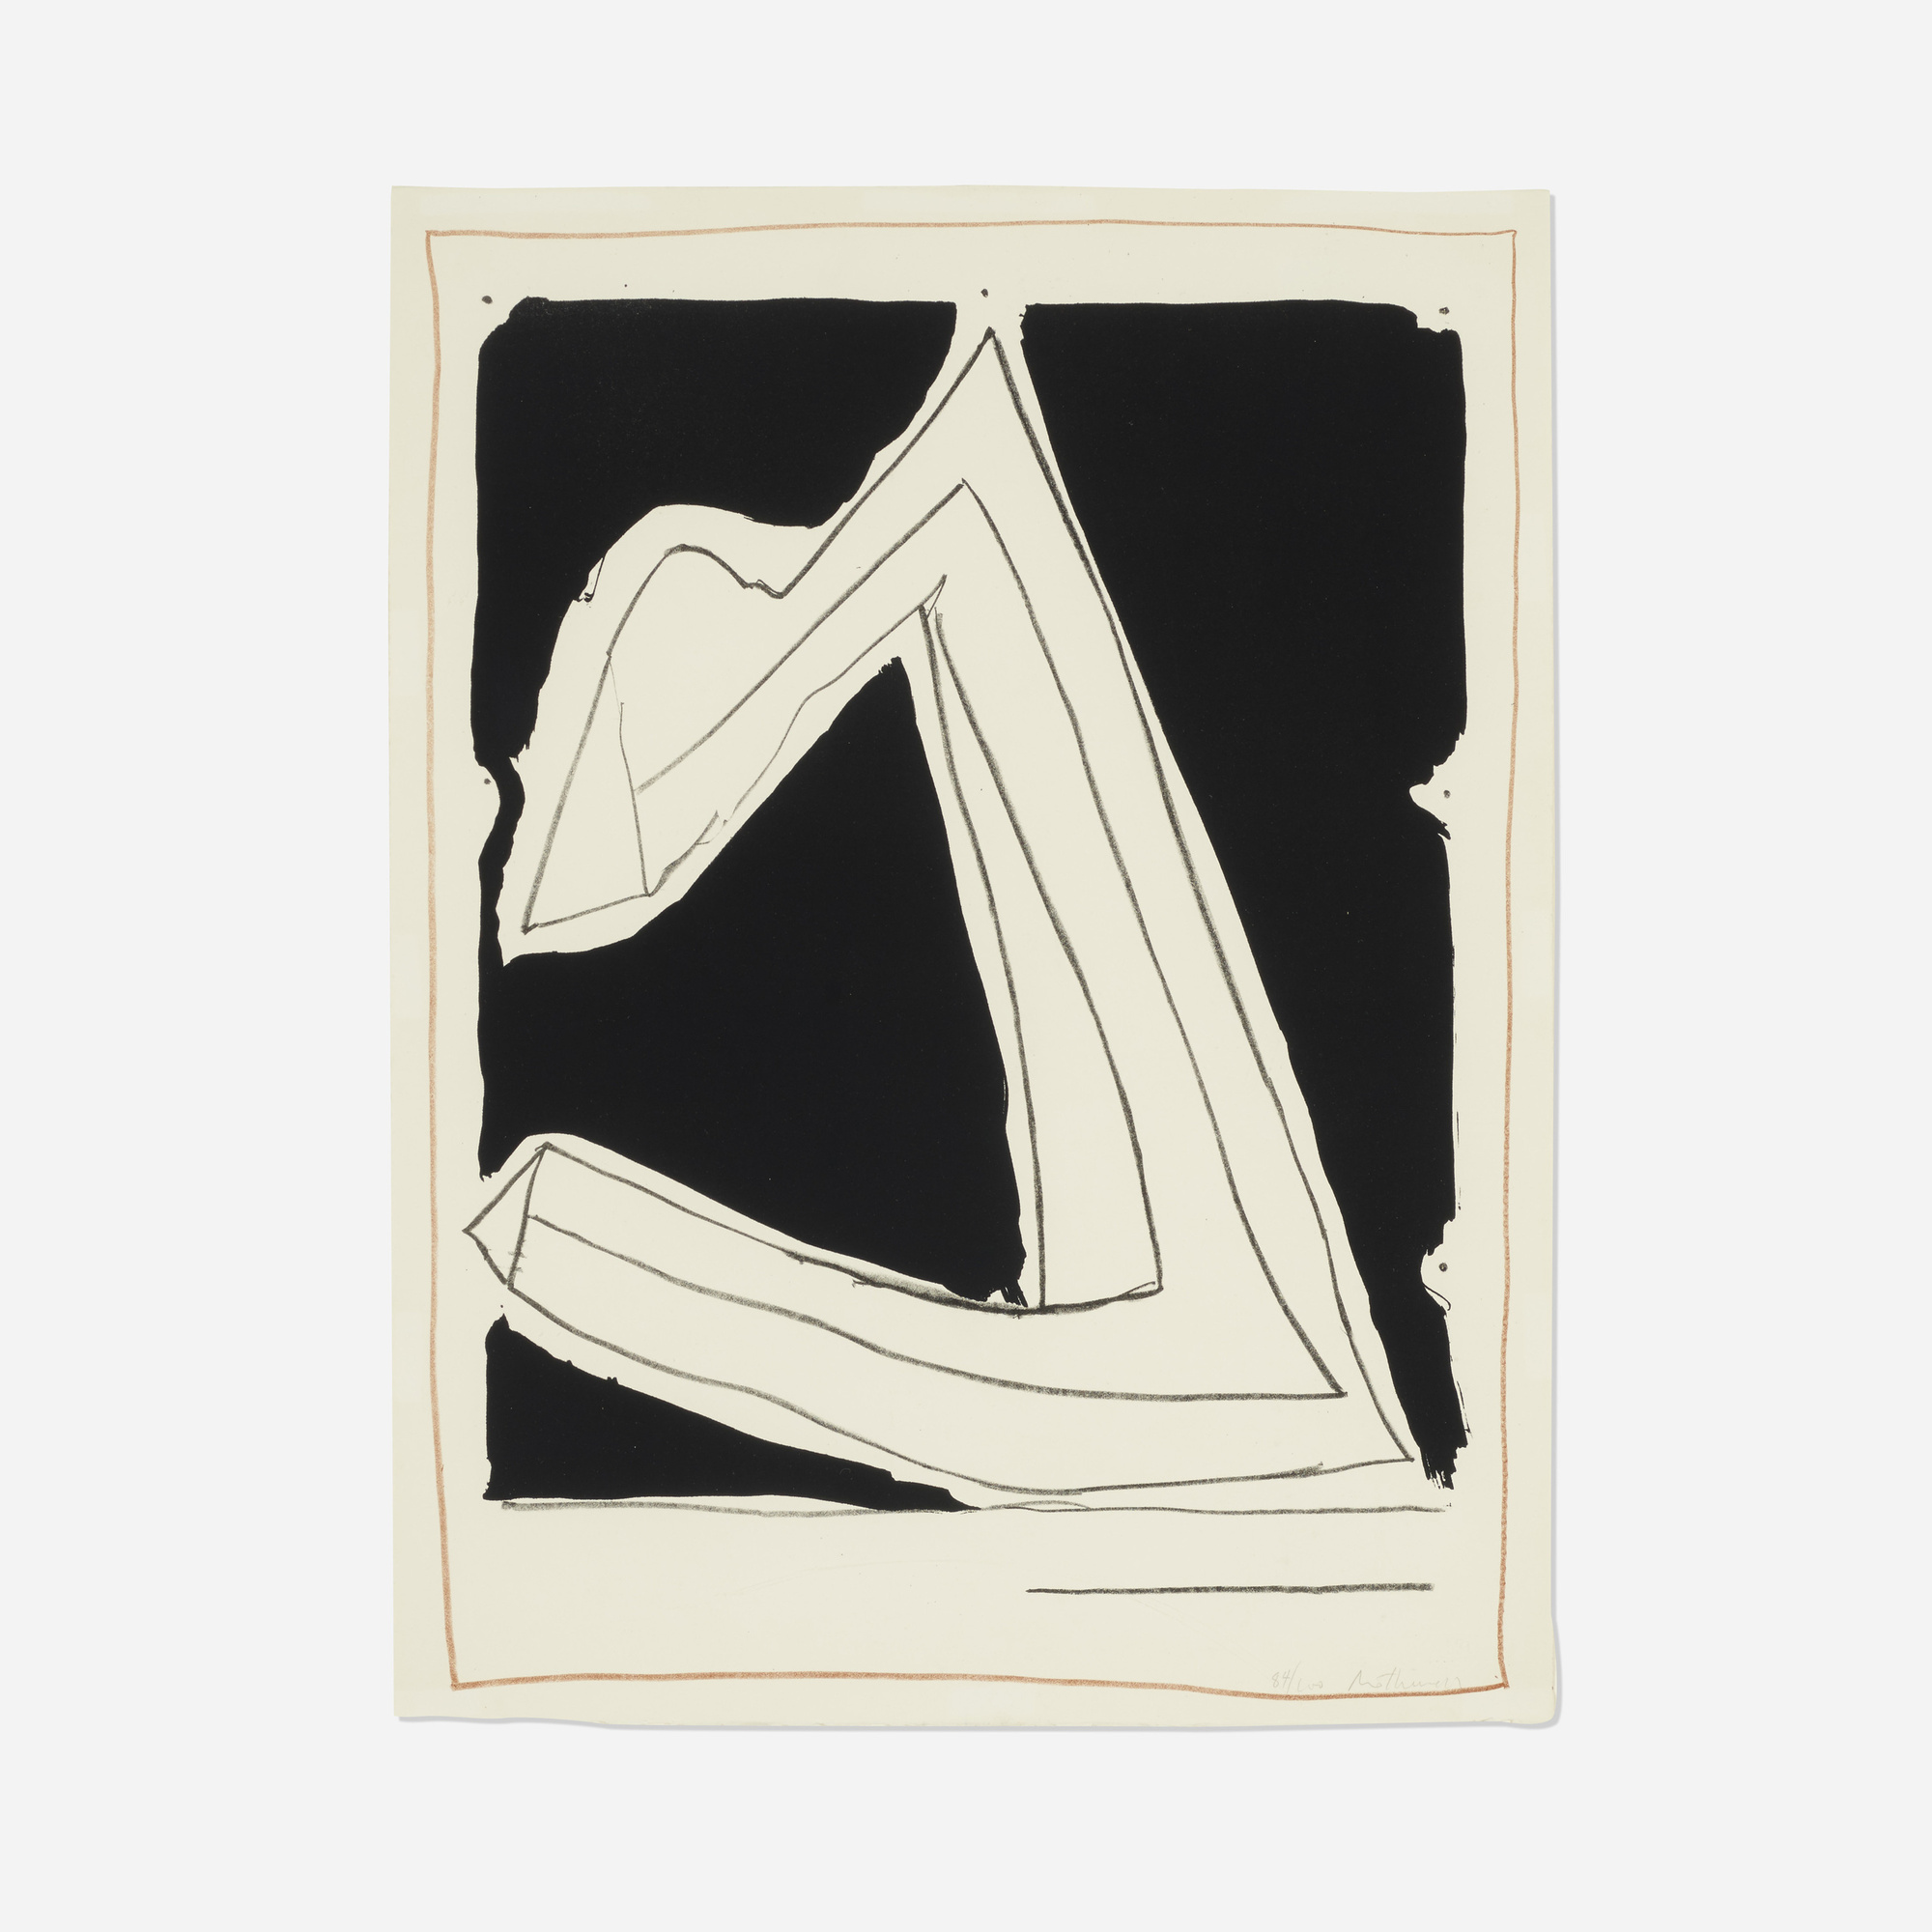 204: Robert Motherwell / Summertime in Italy (with Lines) (1 of 1)